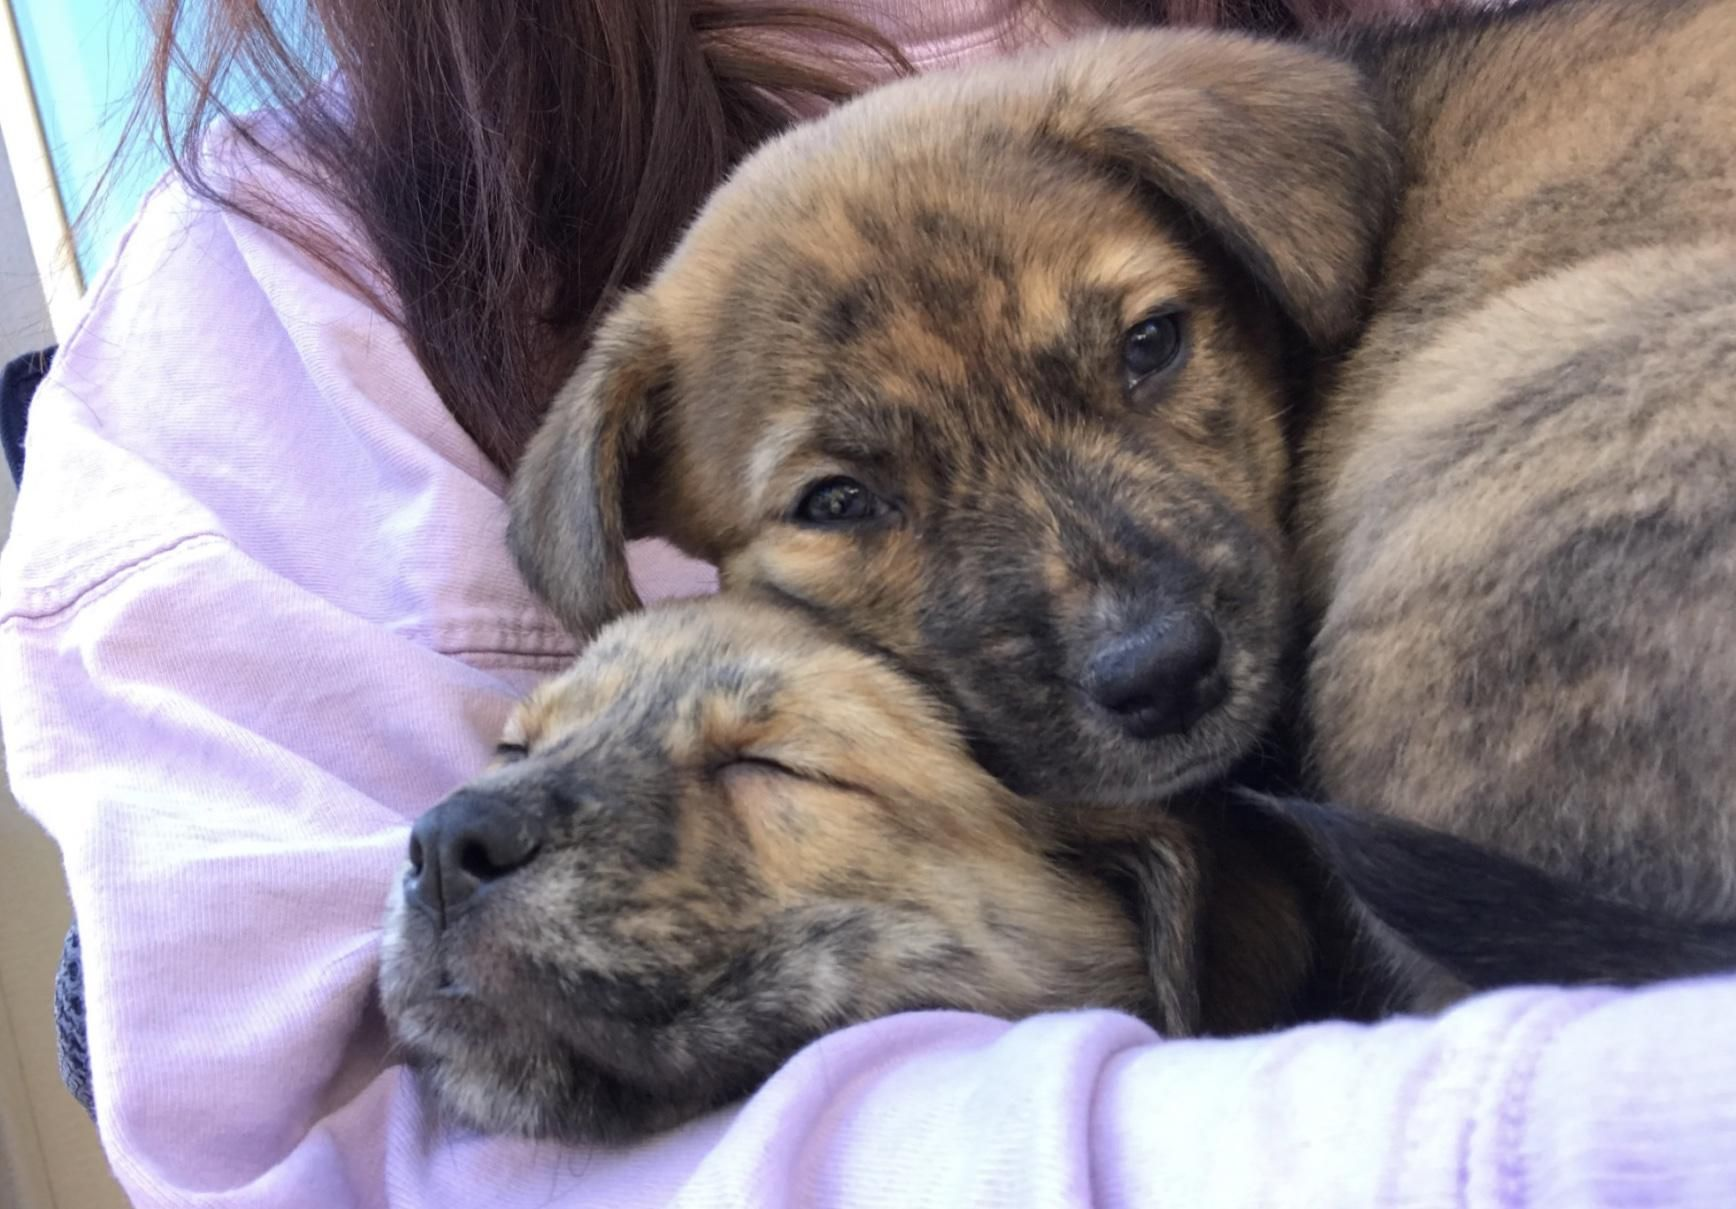 Just Got My First Pupper Australian Shepherd Lab Mix Absolutely Love The Brindle Fur Colorhttps I Re Australian Shepherd Lab Mix Australian Shepherd Brindle